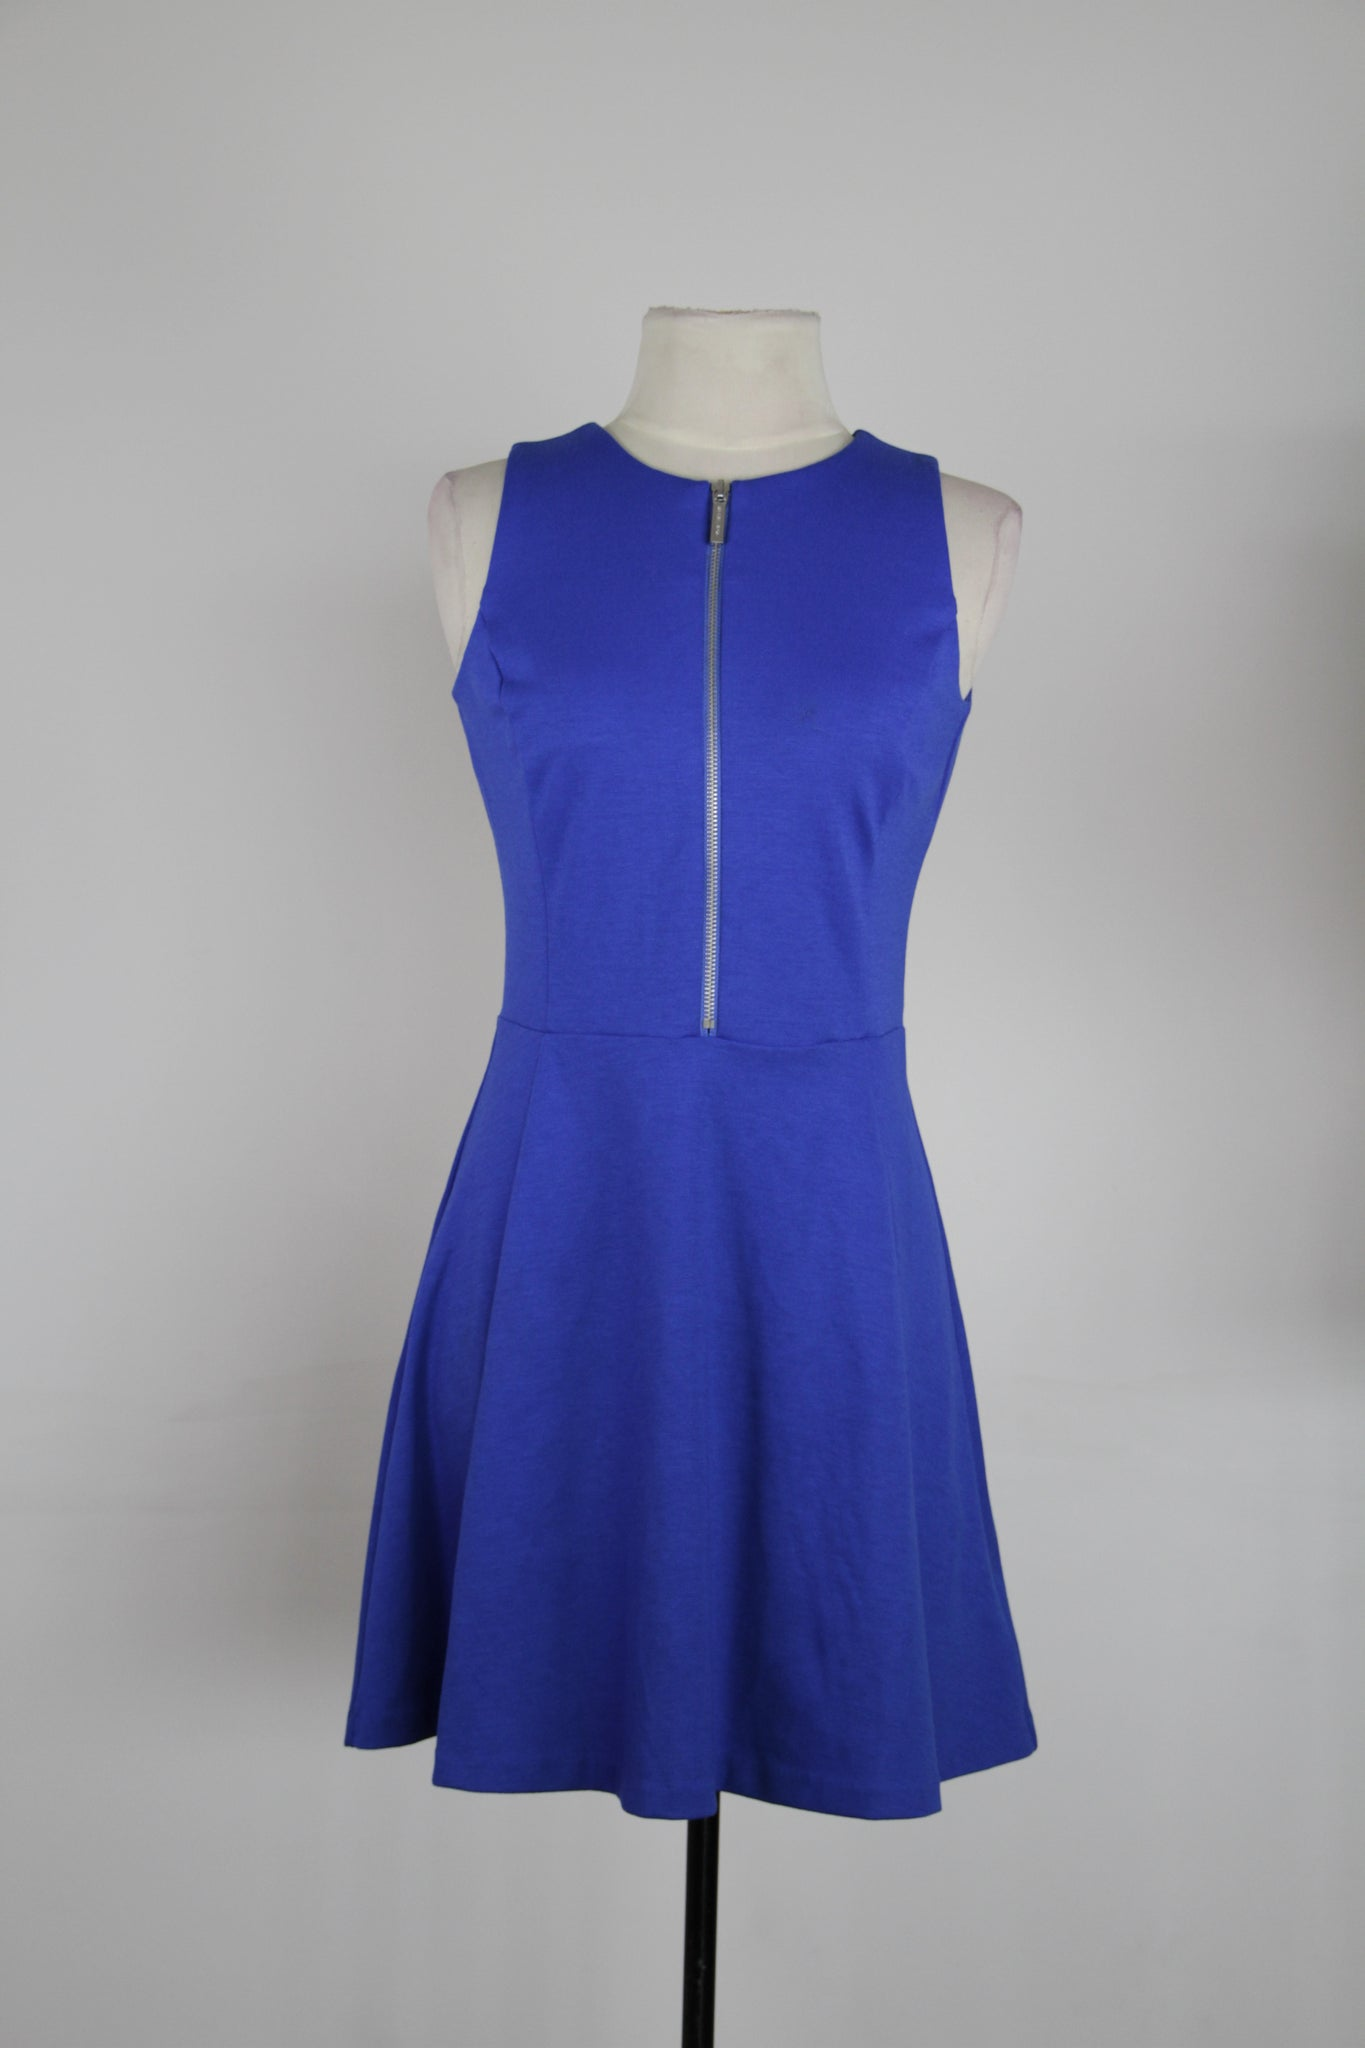 Michael Kors Royal Blue Fit And Flair With Silver Front Zipper Tank Dress